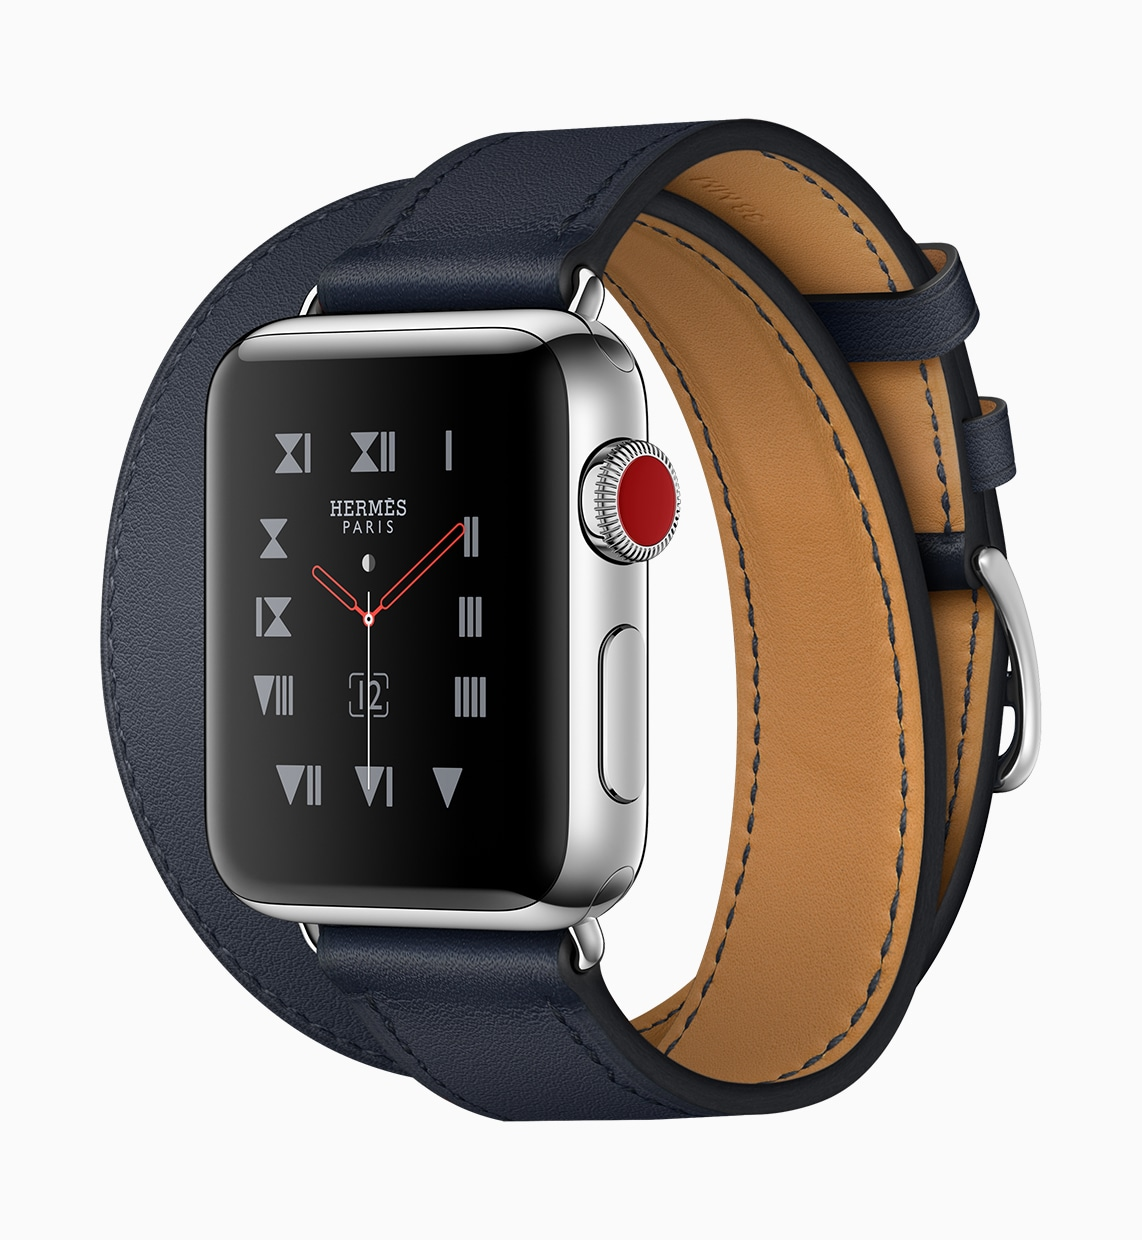 Versão Hermès do Apple Watch Series 3